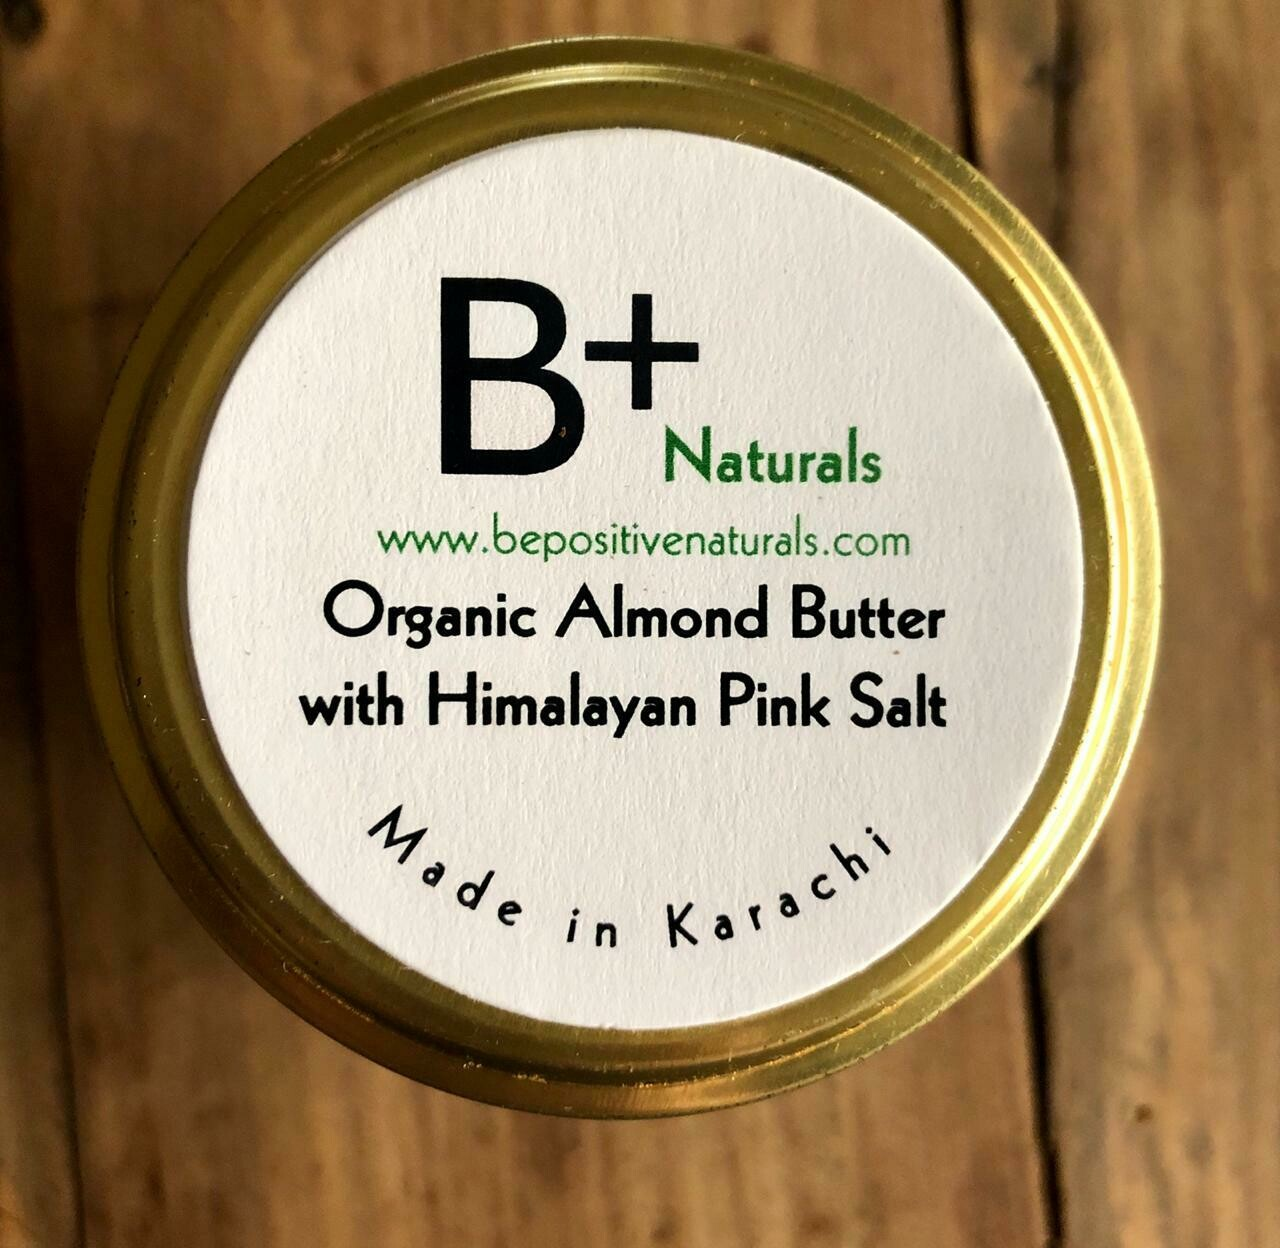 Organic Almond Butter with Himalayan Pink Salt - 300g